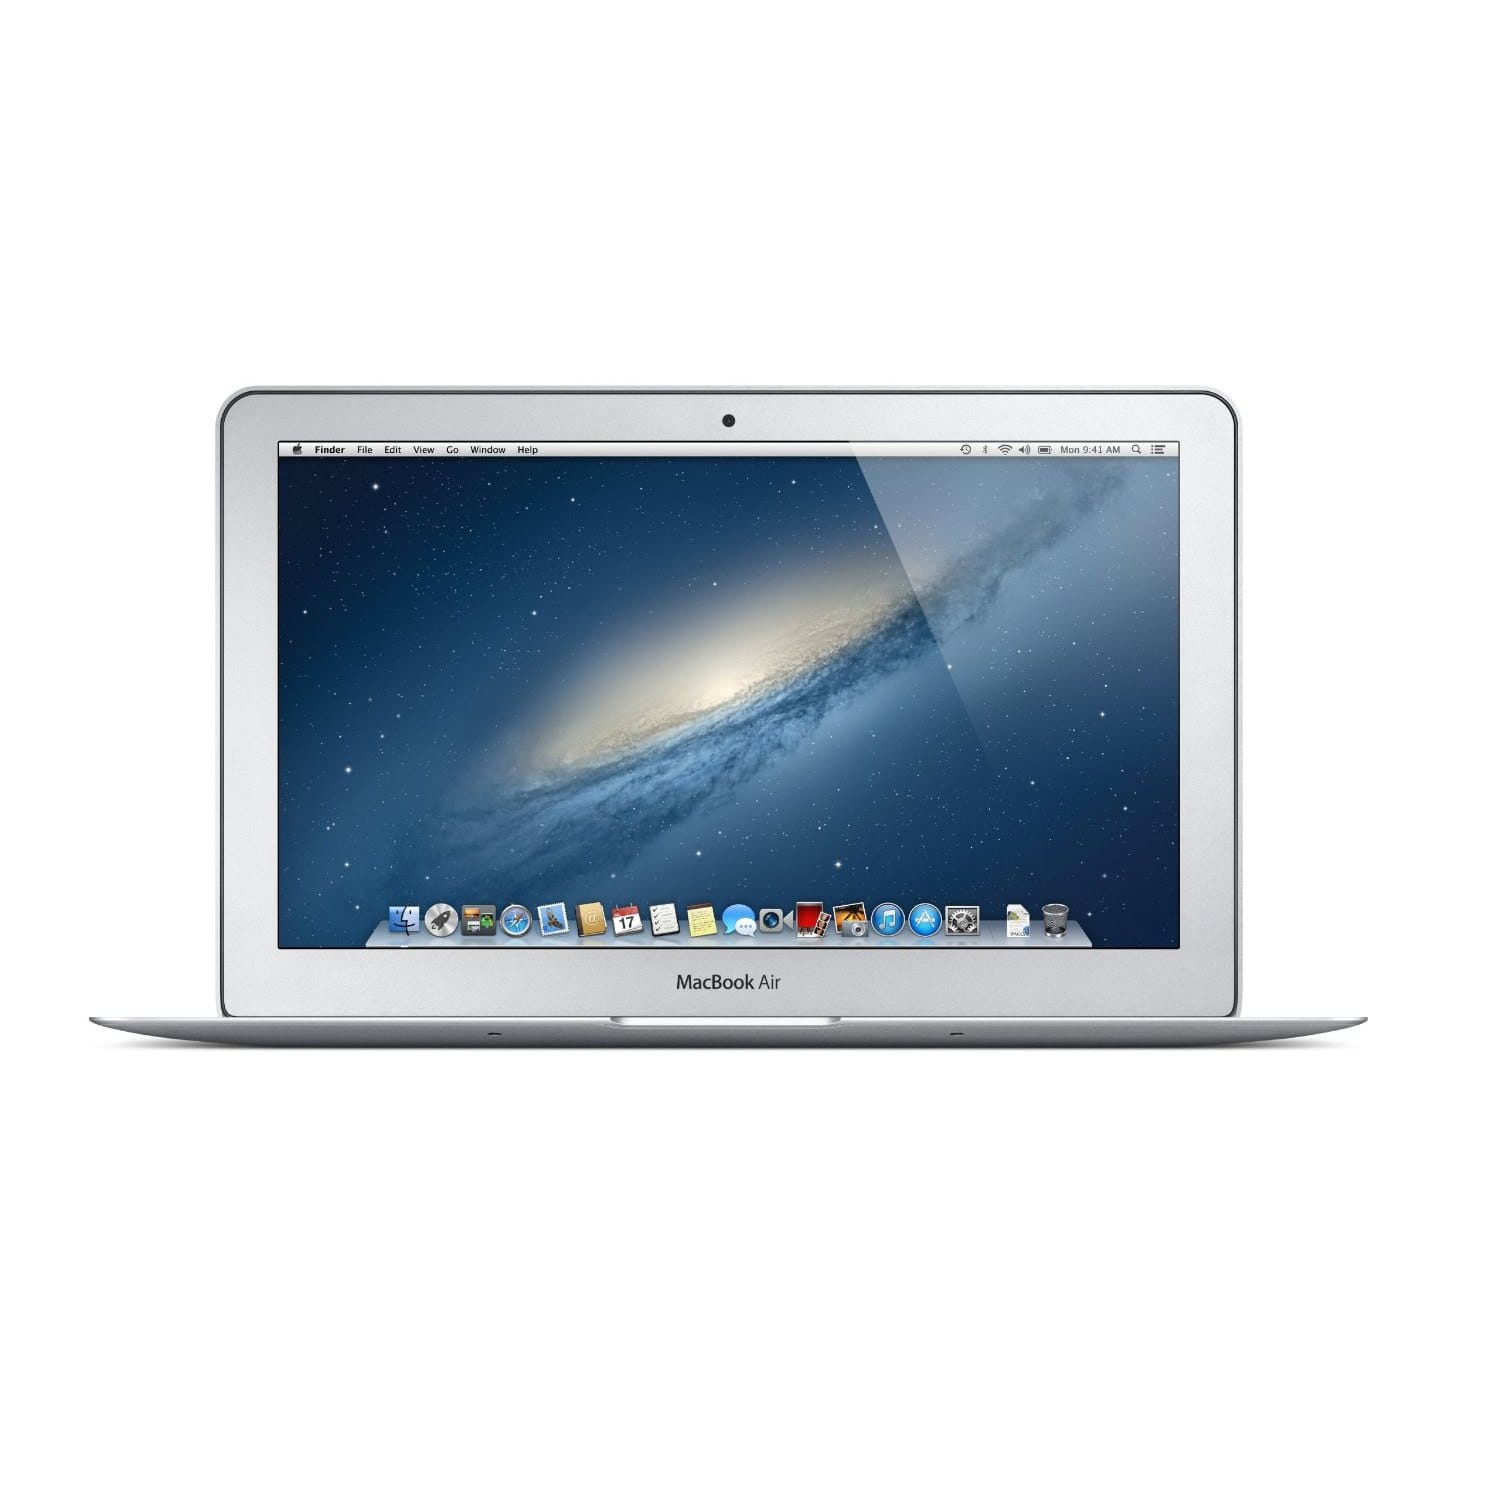 "Apple MacBook Air Core i5-4250U Dual-Core 1.3GHz 4GB 128GB SSD 11.6"" LED (Refurbished) $279.99 + 10% Back in Rakuten Points"